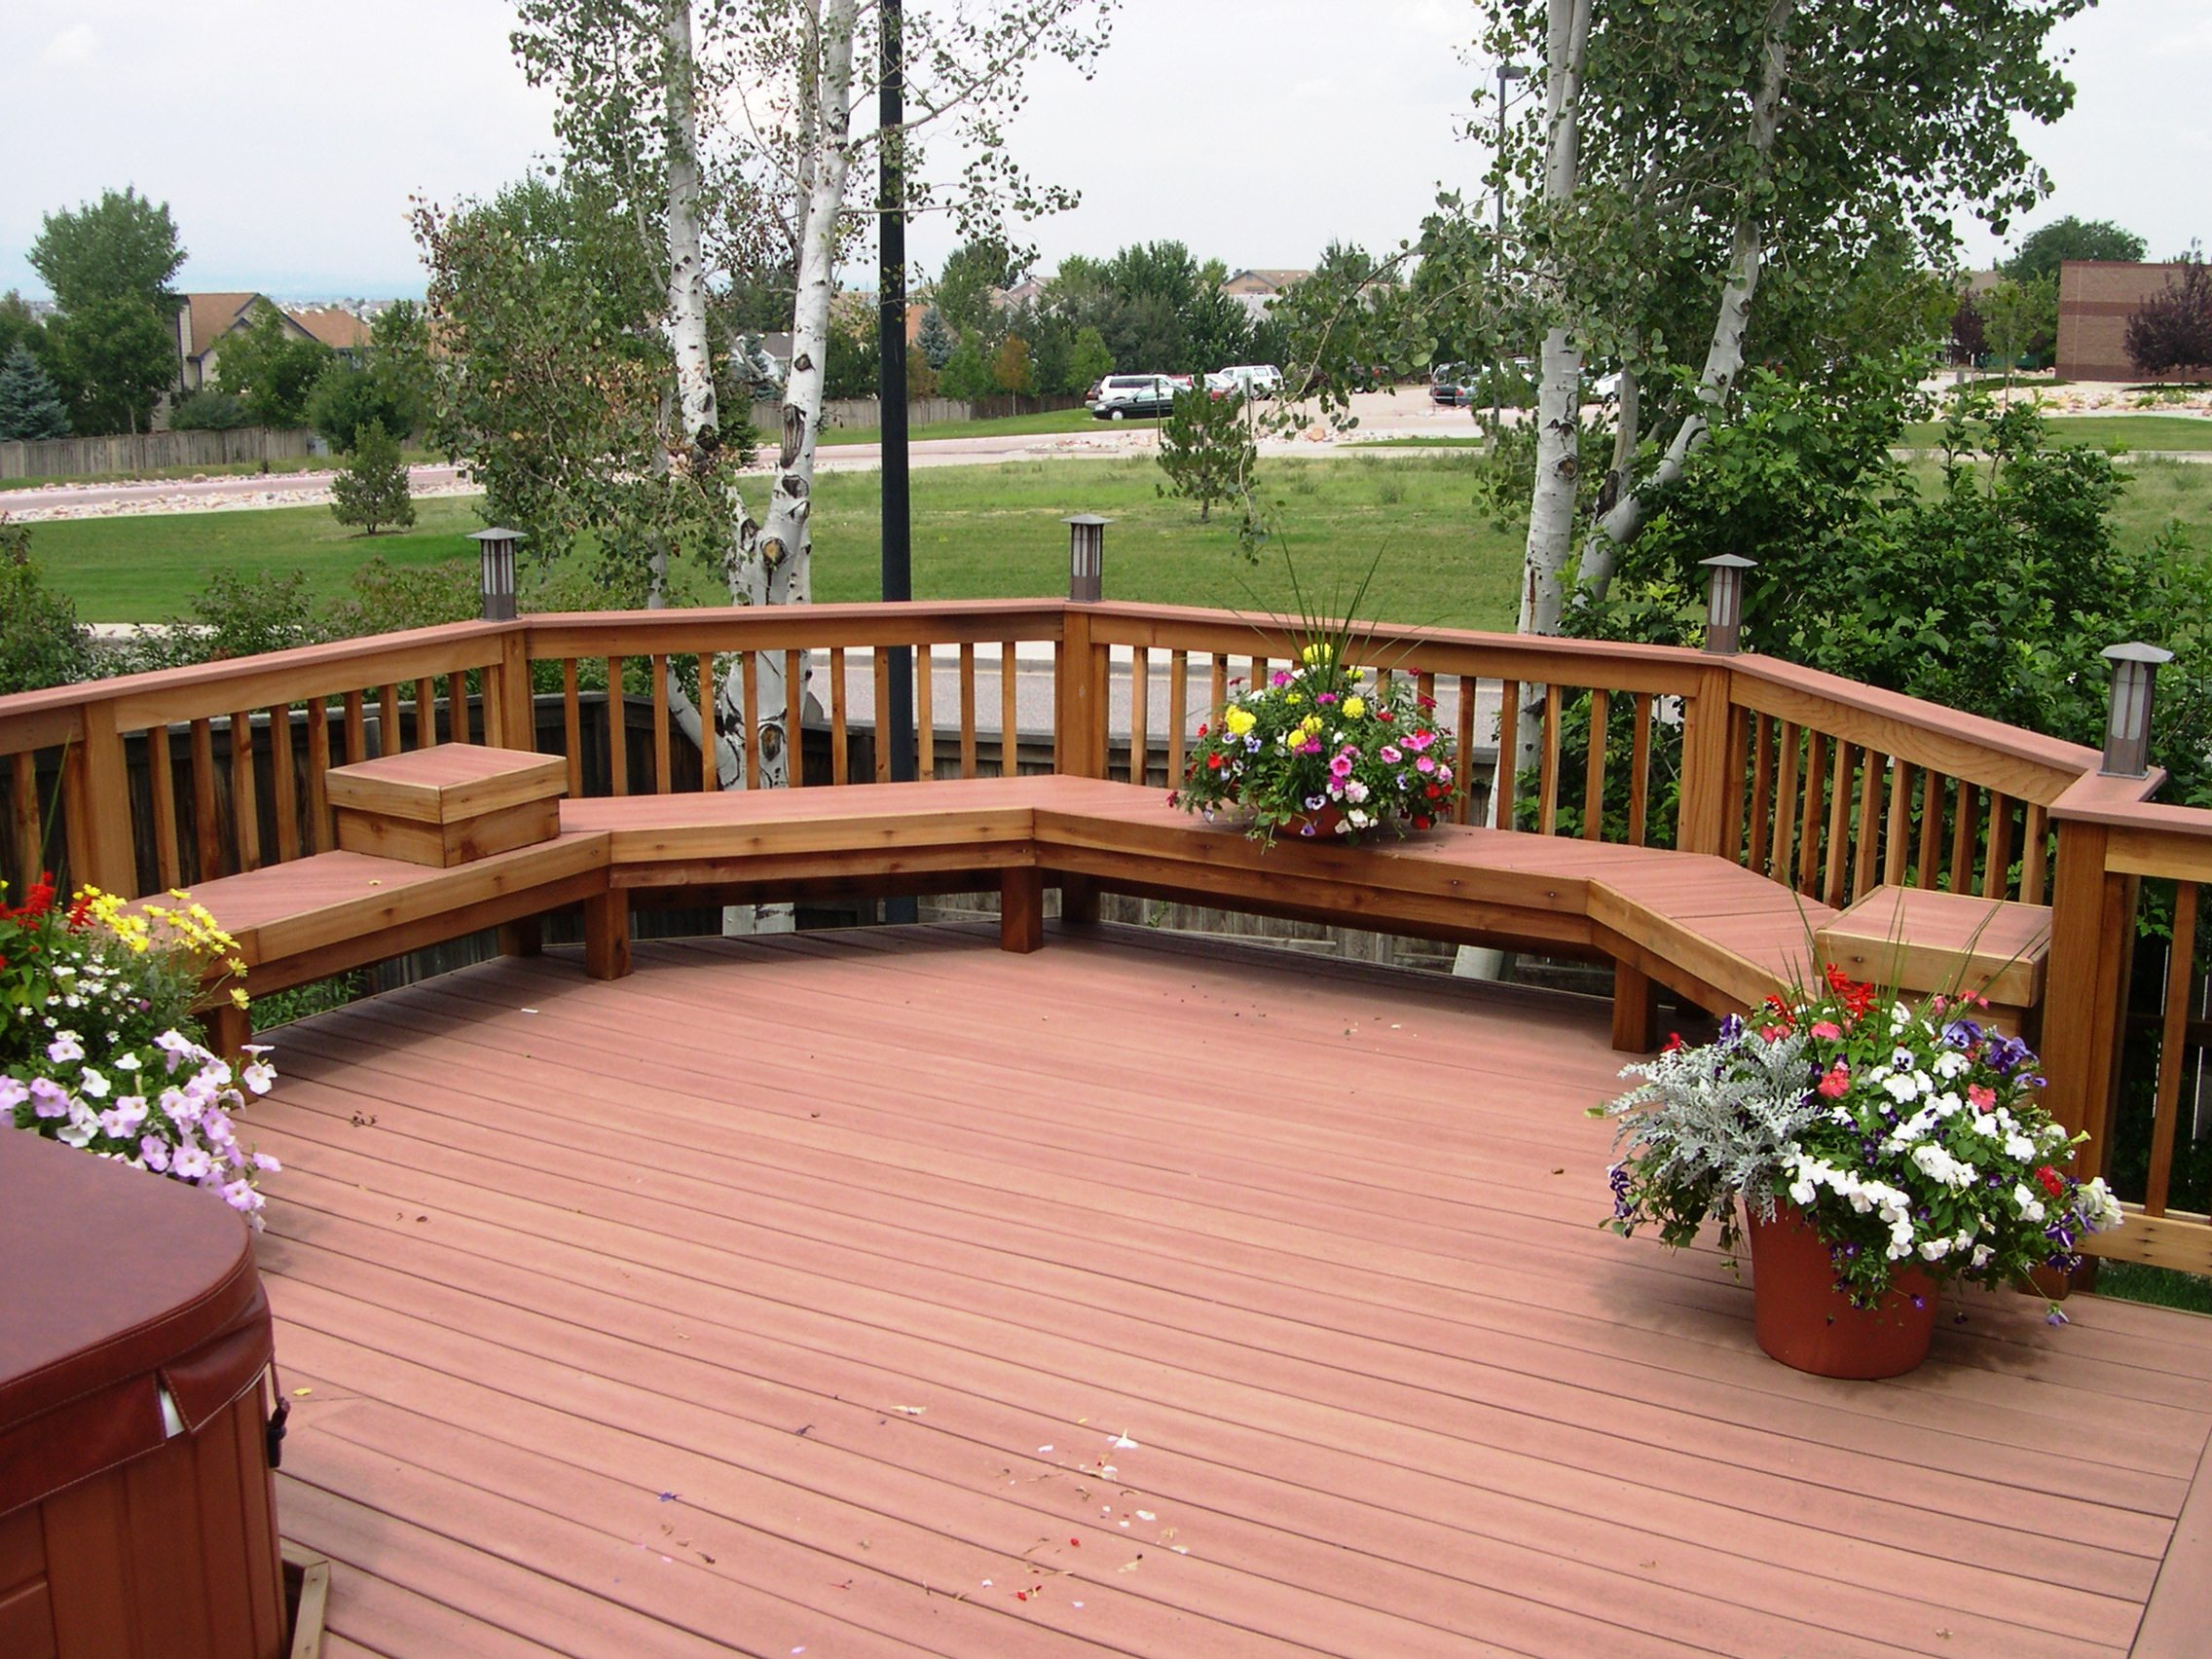 Awesome Home Deck Designs - HomesFeed on Garden Patio Decking Ideas id=78228